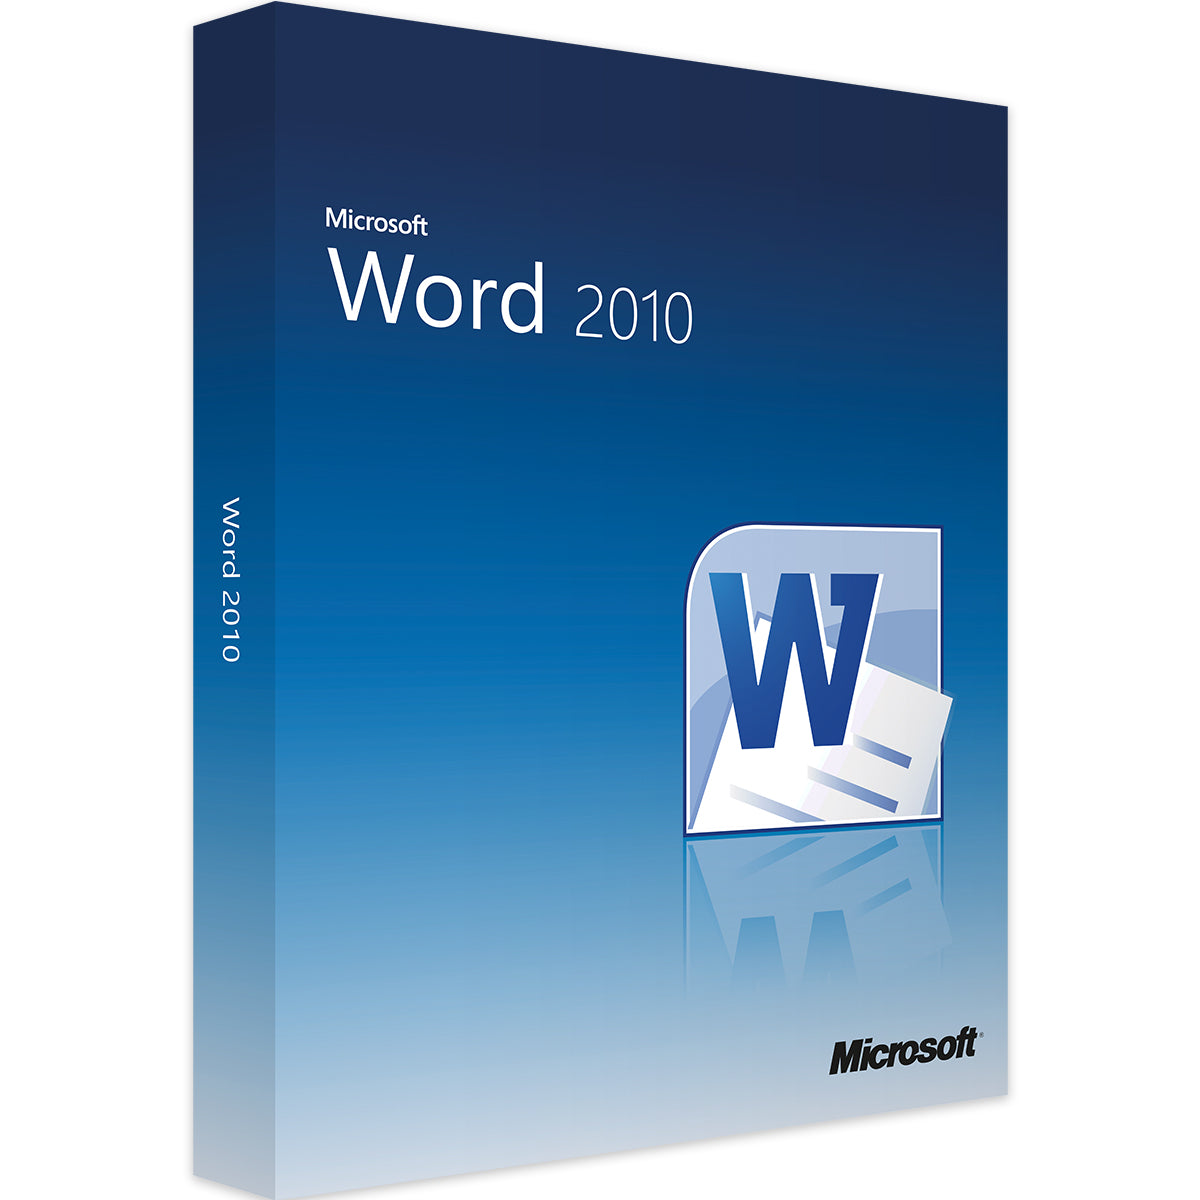 Microsoft Word 2010 - Software-Markt data-zoom=